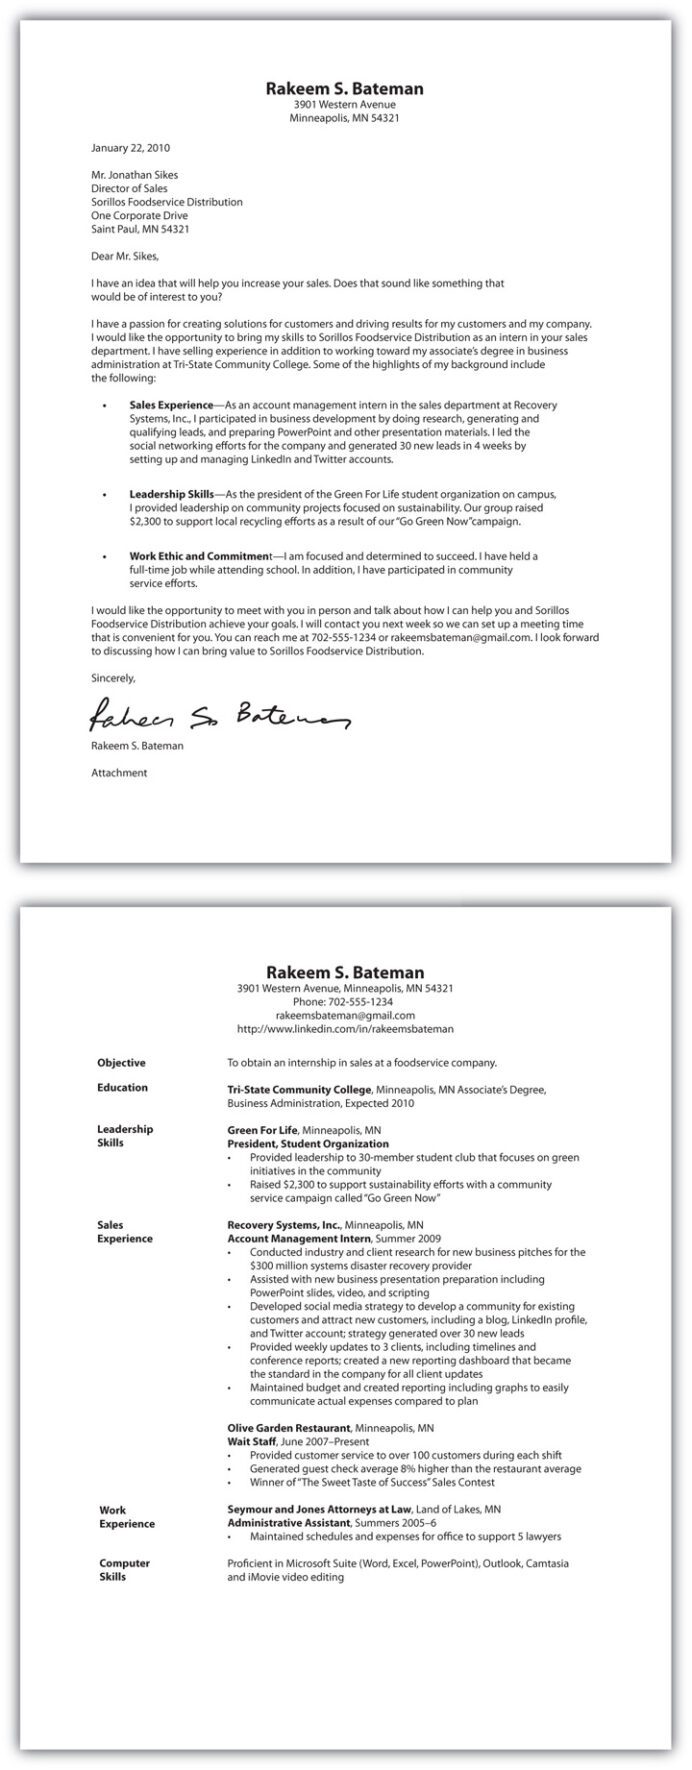 selling résumé and cover letter essentials putting together resume microservices Resume Putting Together A Resume And Cover Letter